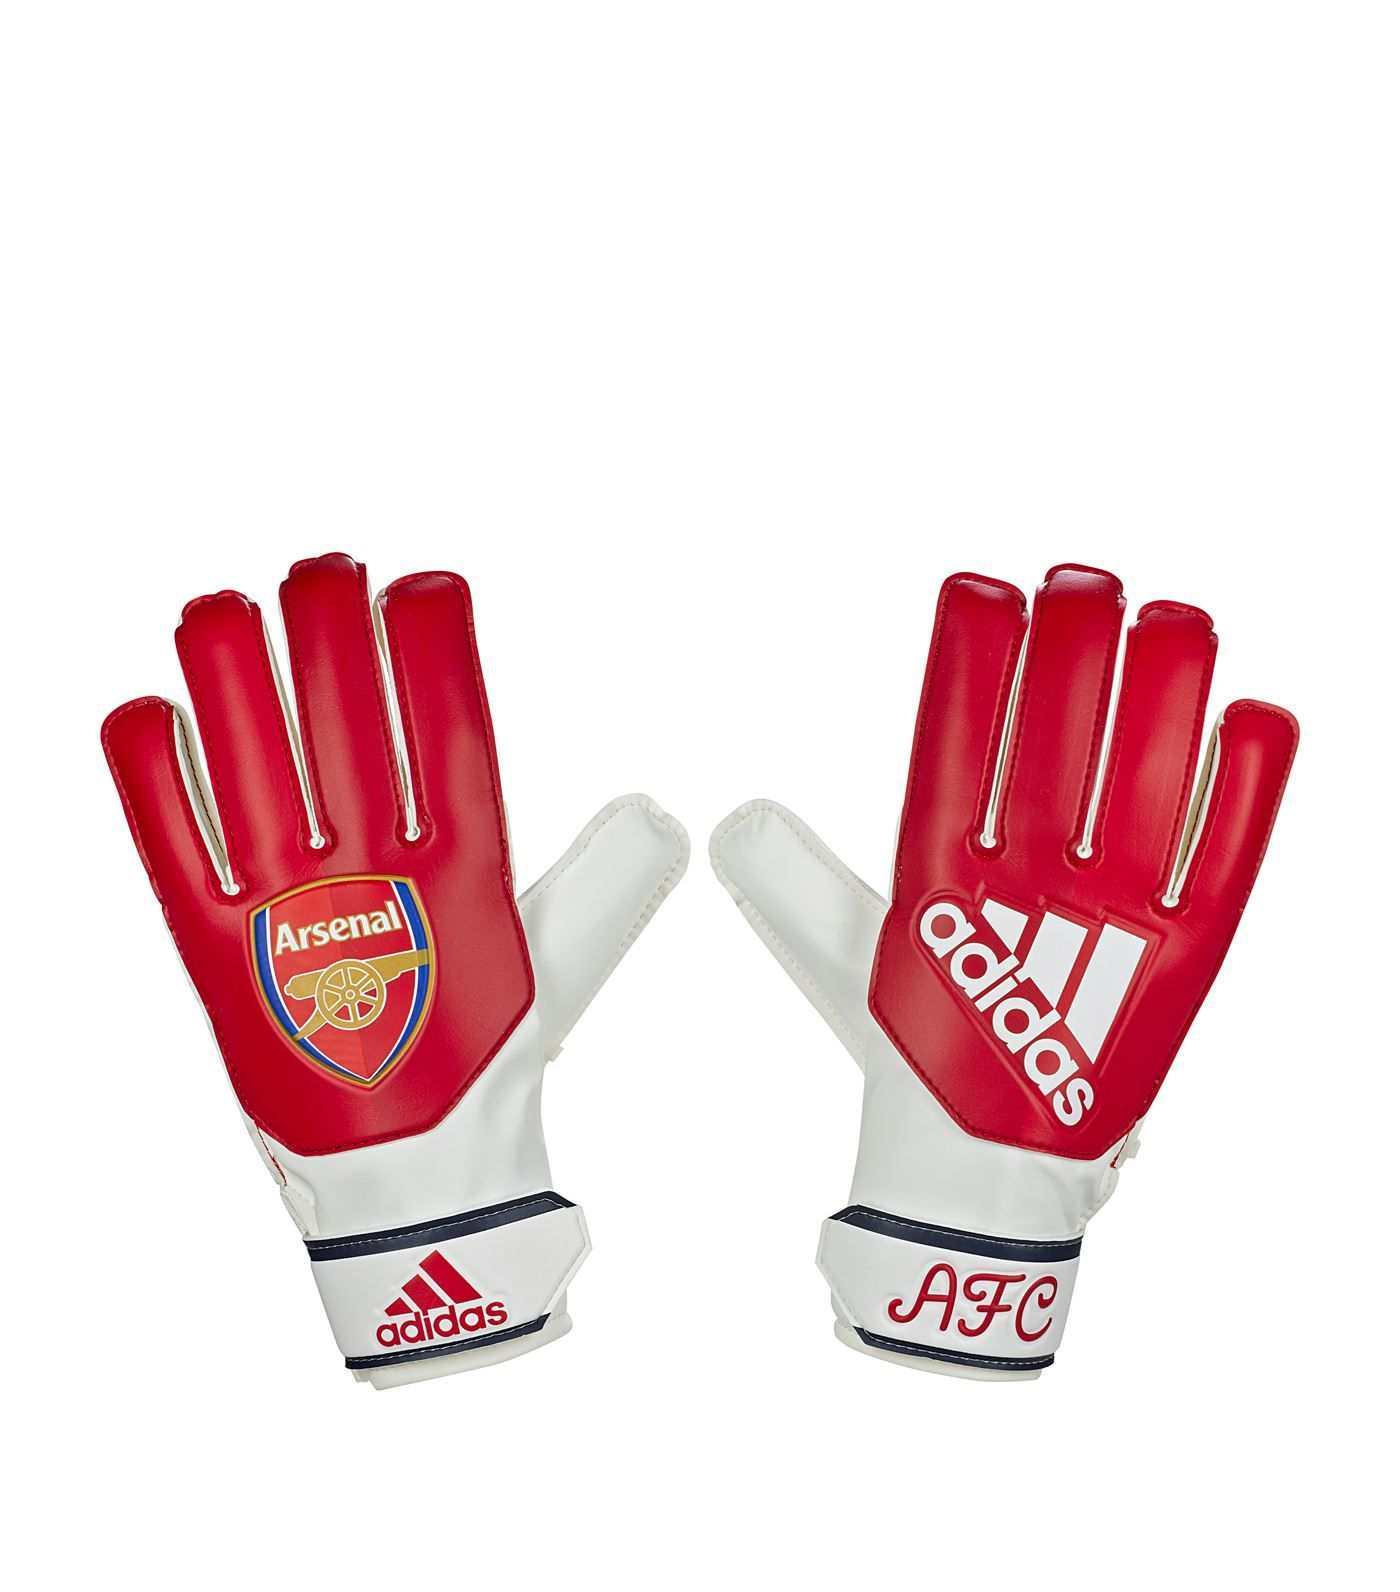 Kids arsenal football gloves in red